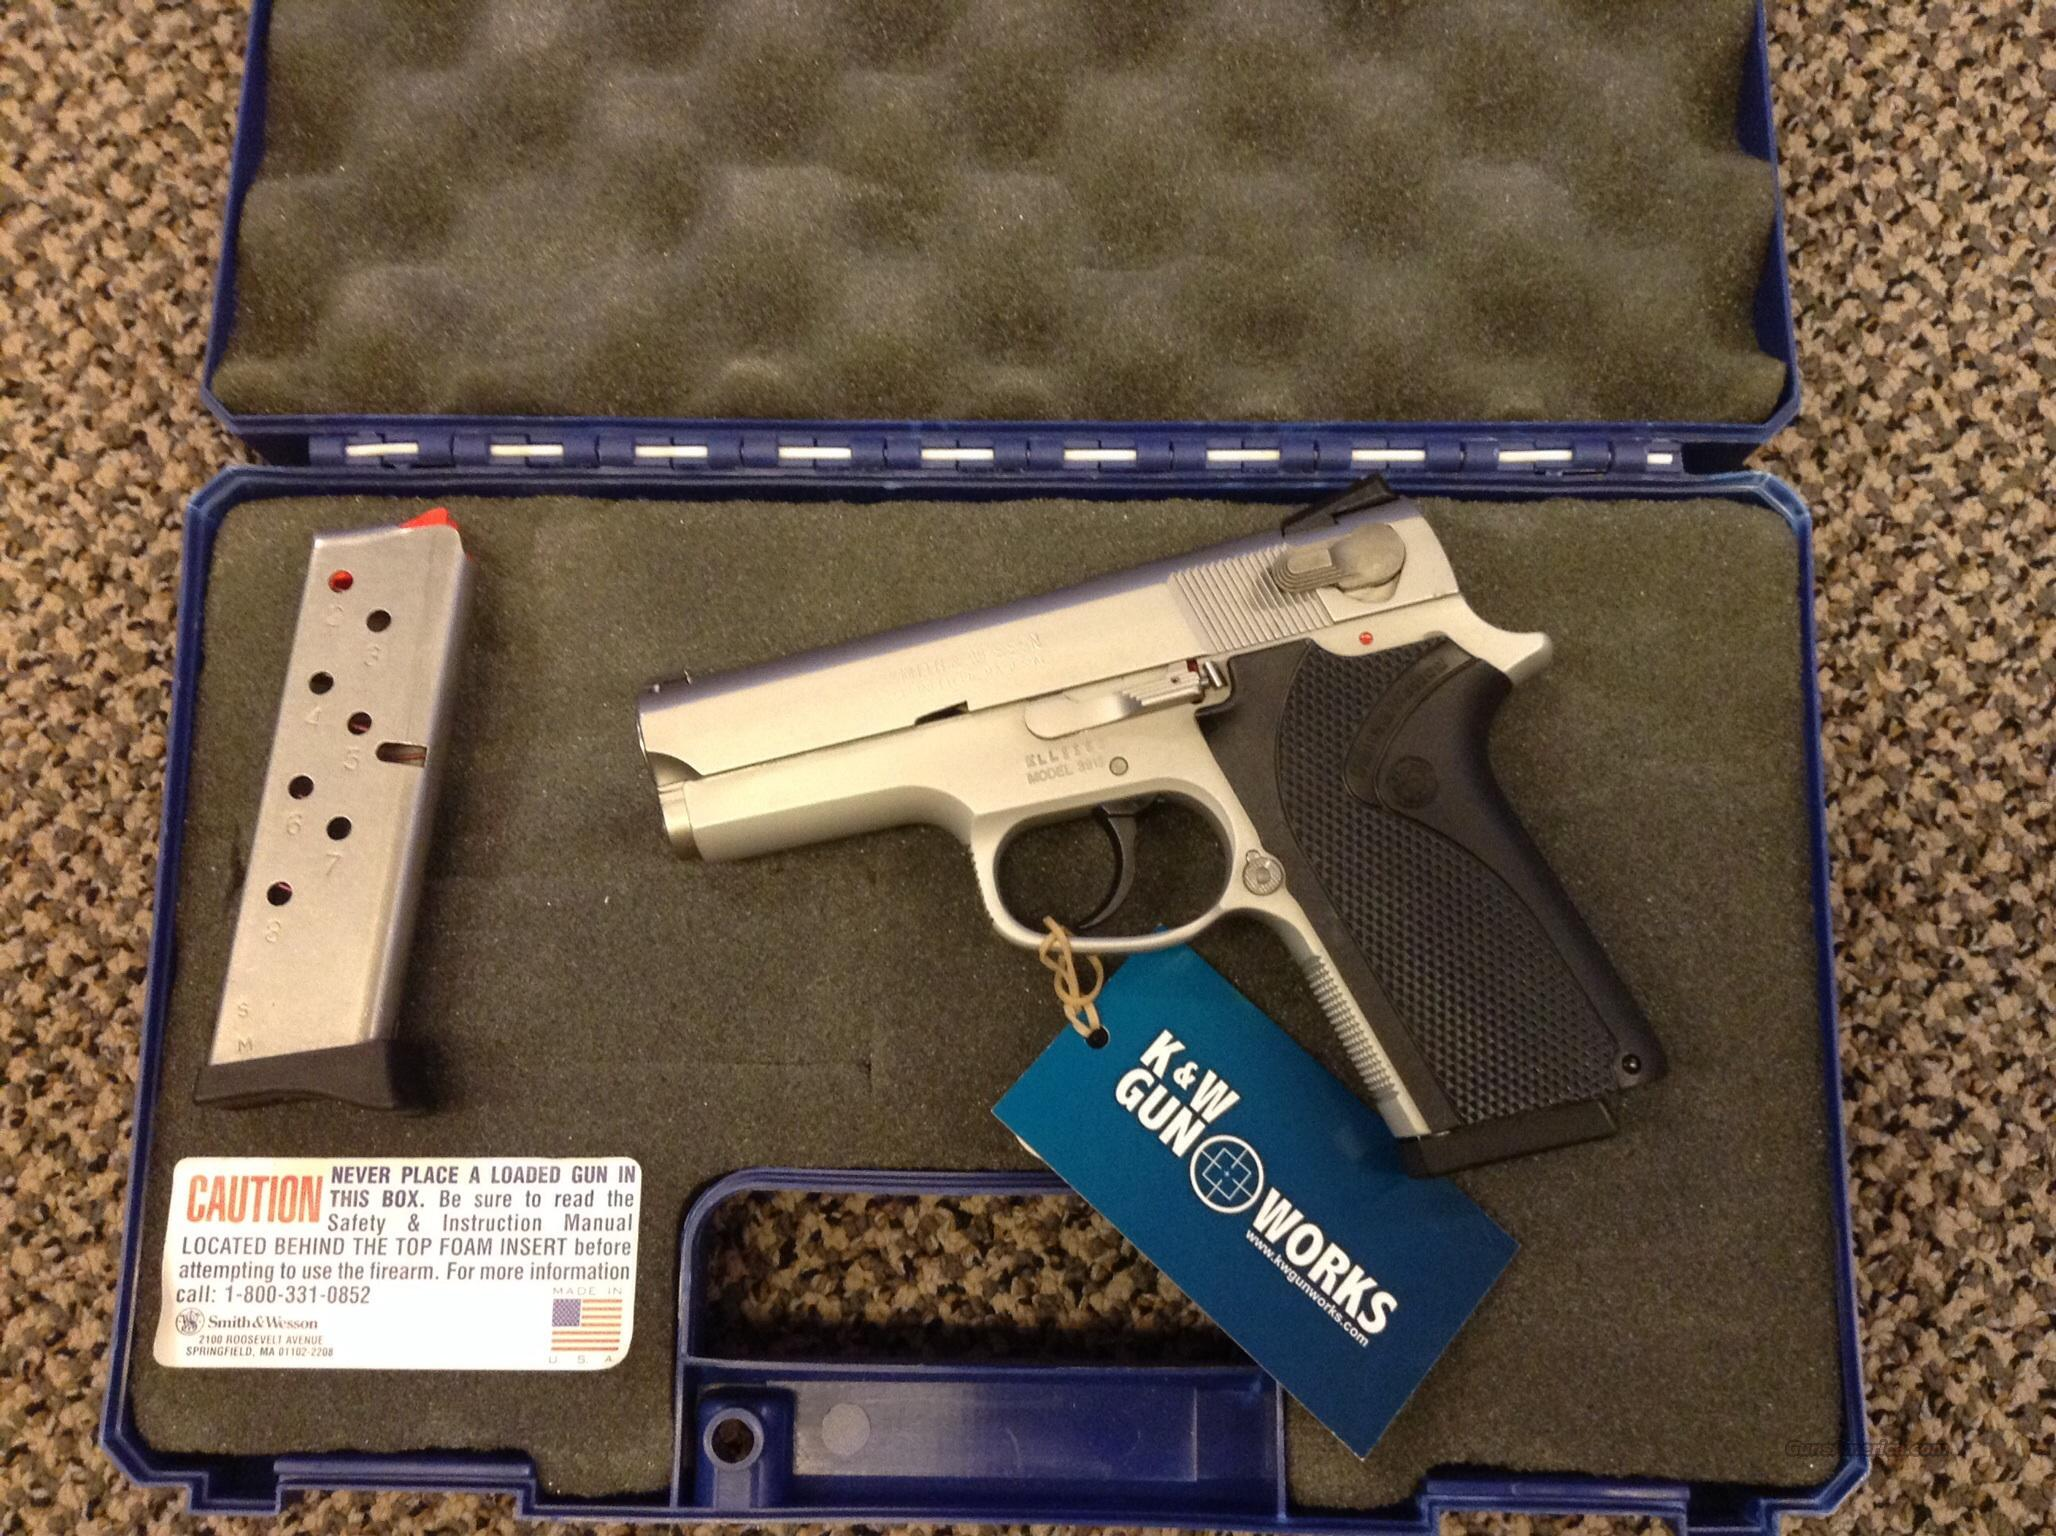 SMITH & WESSON S&W MODEL 3913 9MM WITH BOX AND TWO SINGLE STACK MAGAZINES  Guns > Pistols > Smith & Wesson Pistols - Autos > Alloy Frame